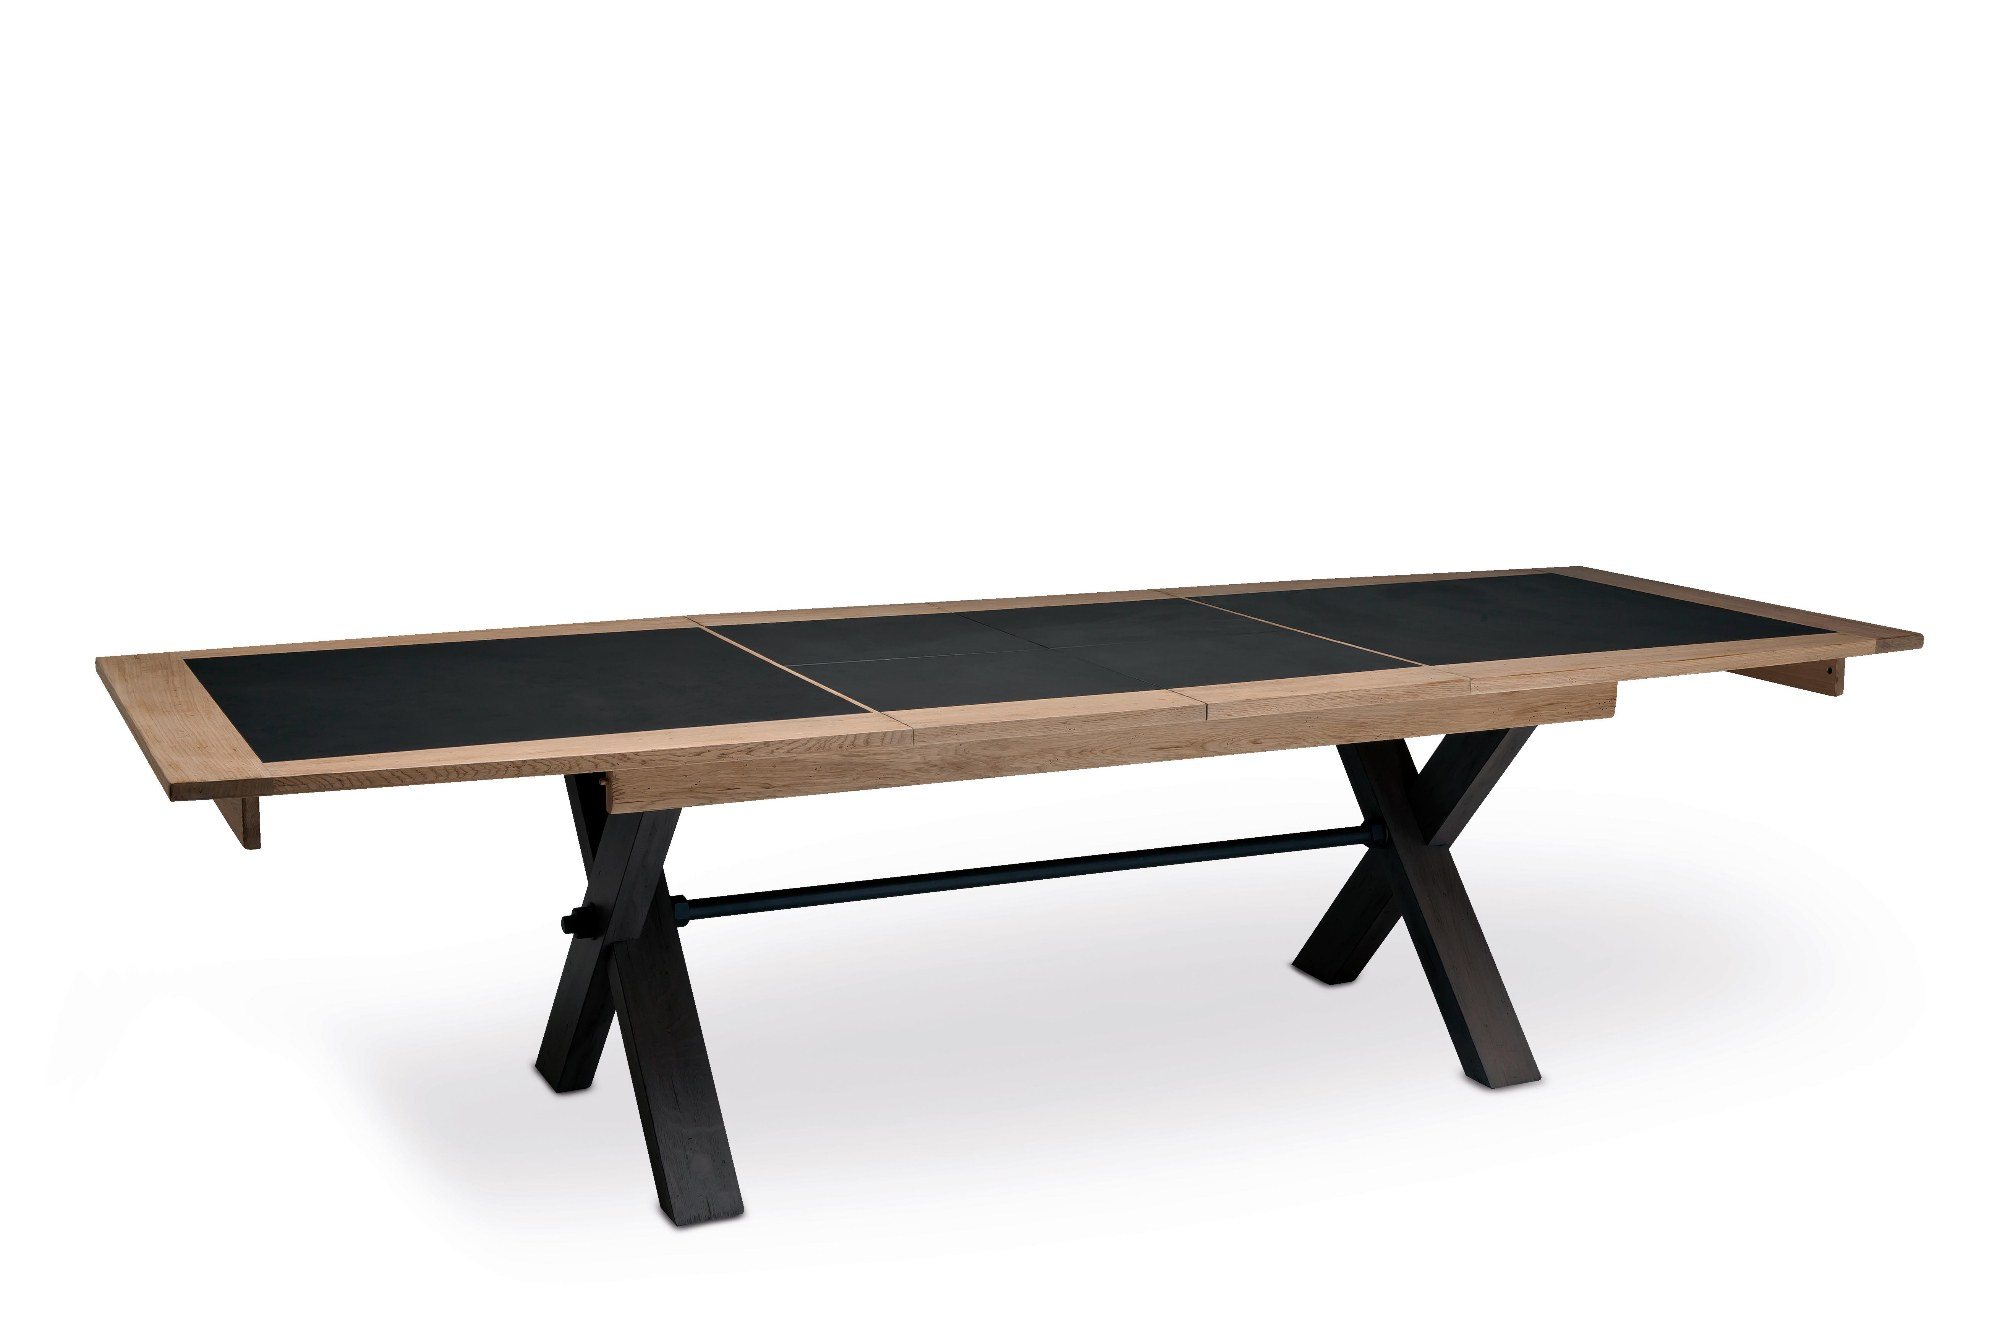 MAGELLAN TABLE PIED X ALLONGE